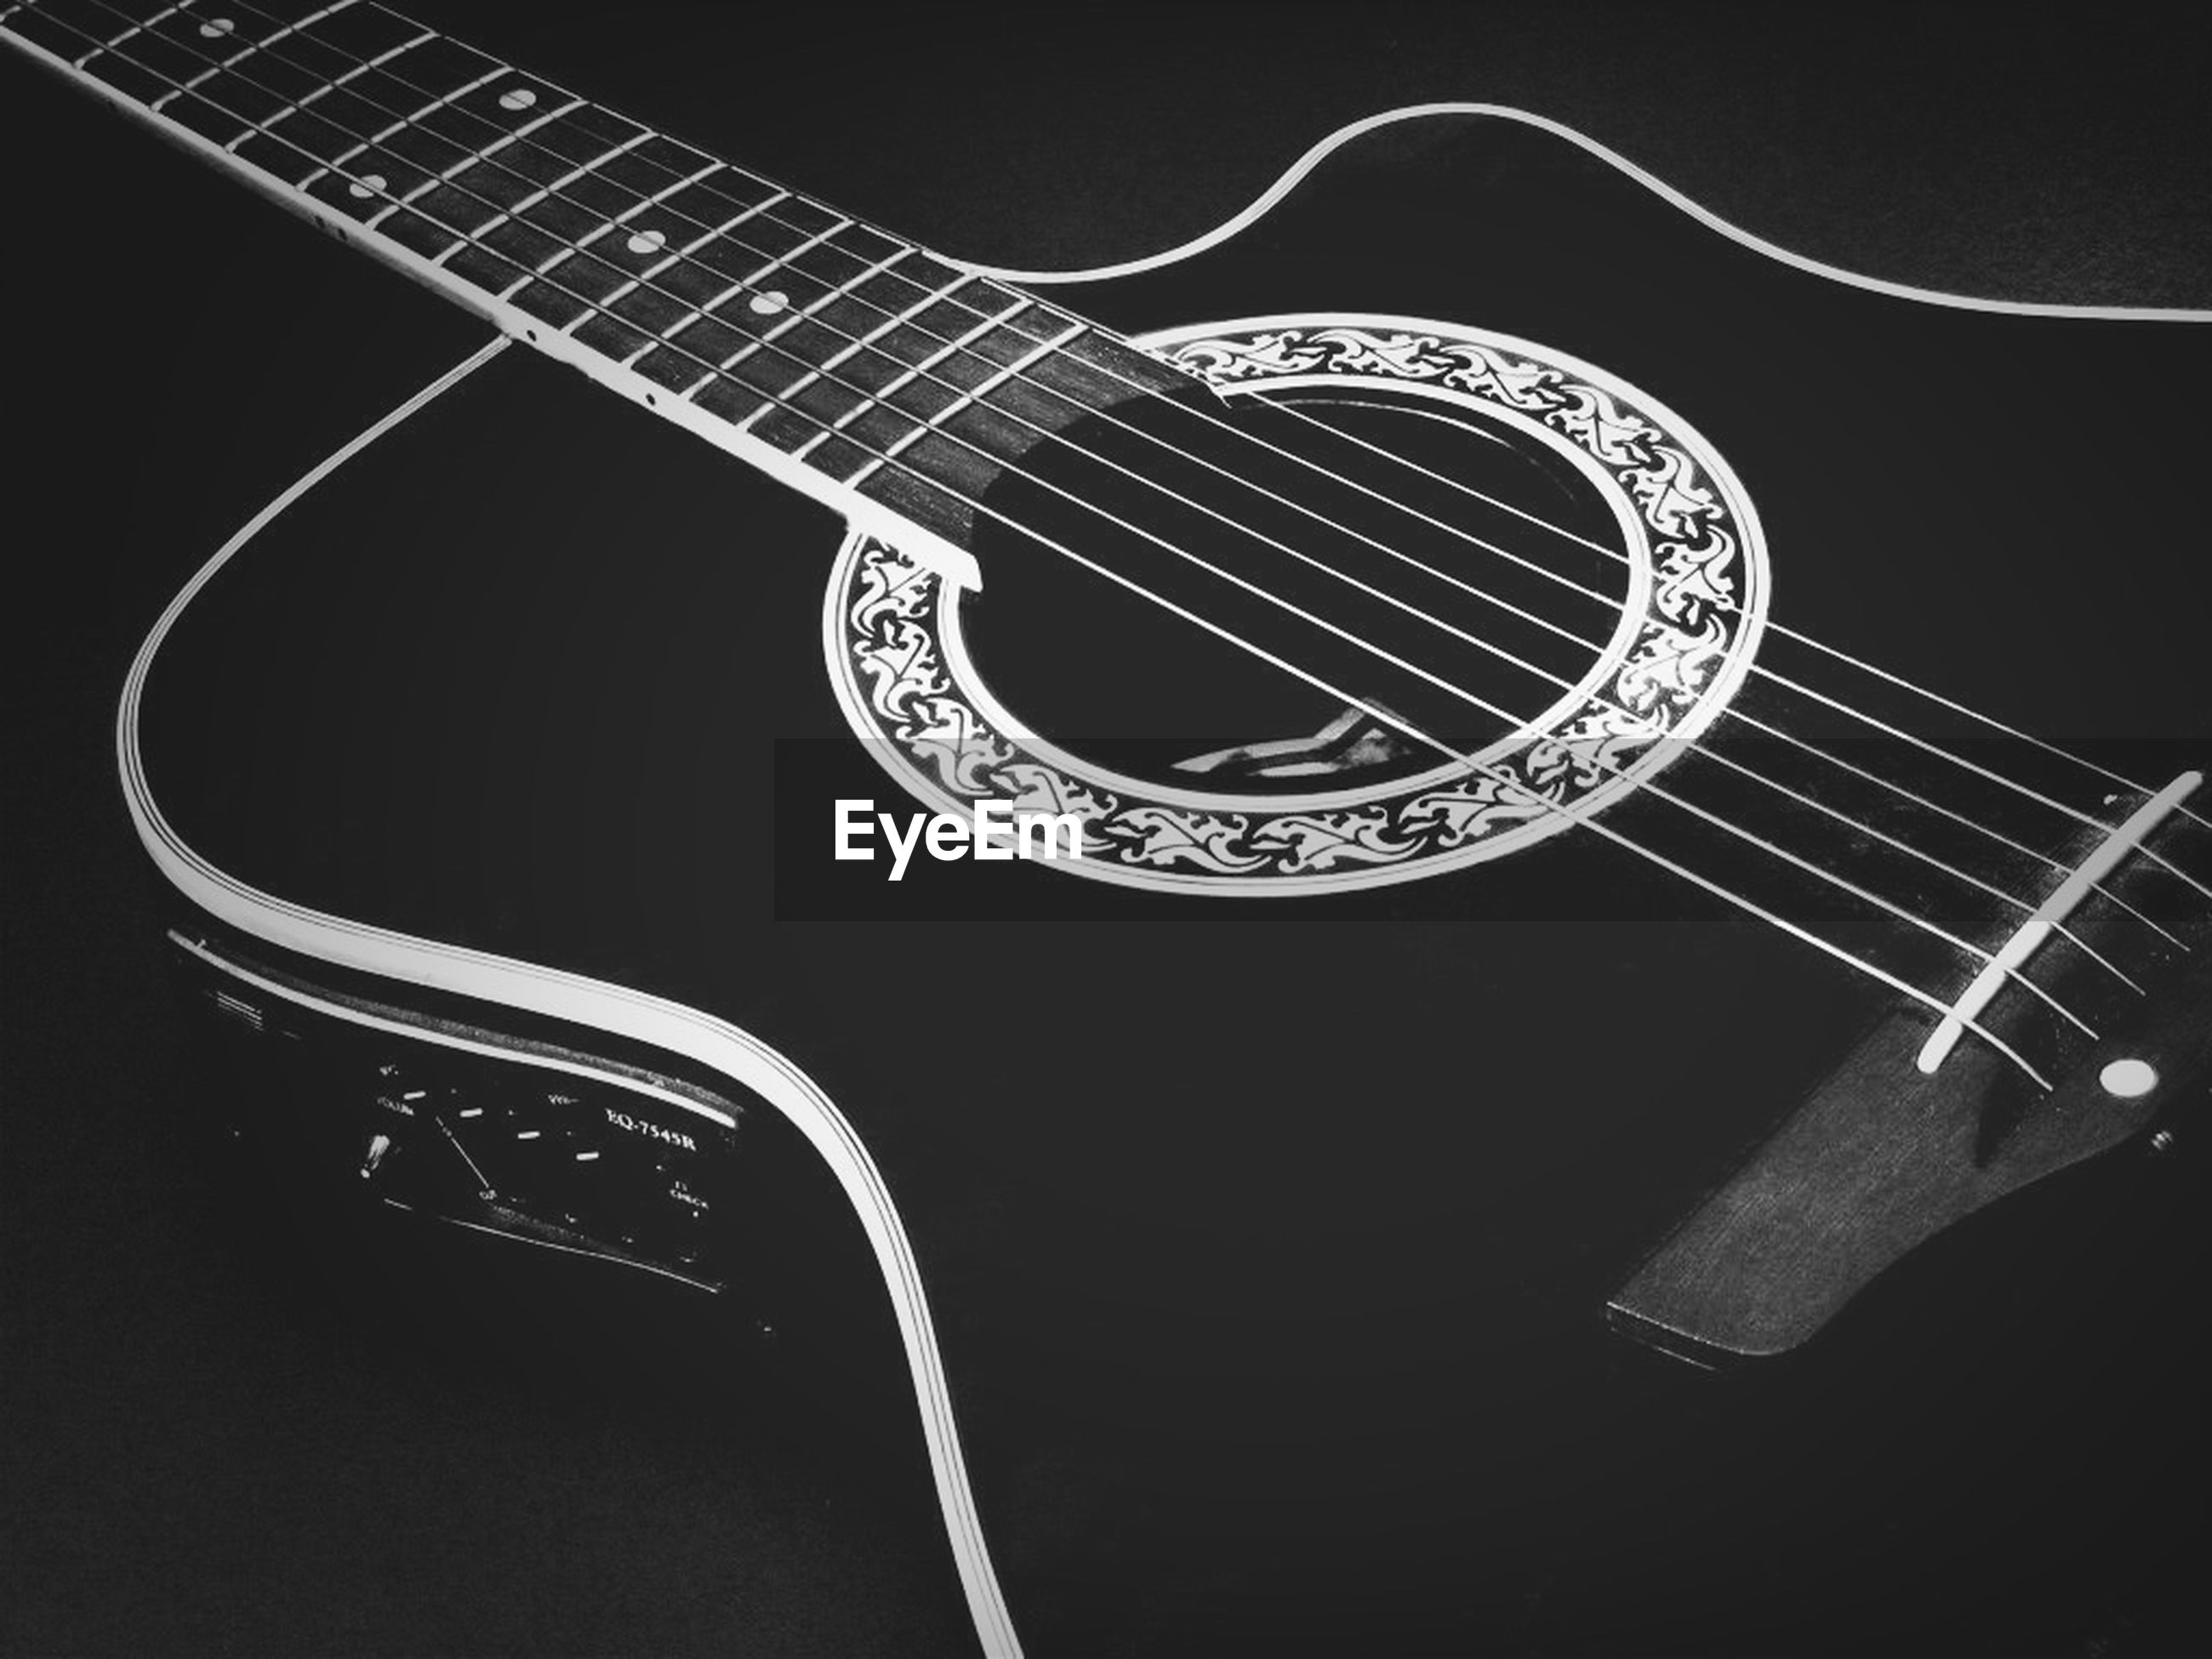 music, musical instrument, arts culture and entertainment, close-up, metal, guitar, studio shot, musical equipment, indoors, musical instrument string, pattern, curve, still life, design, spiral, single object, high angle view, night, part of, equipment